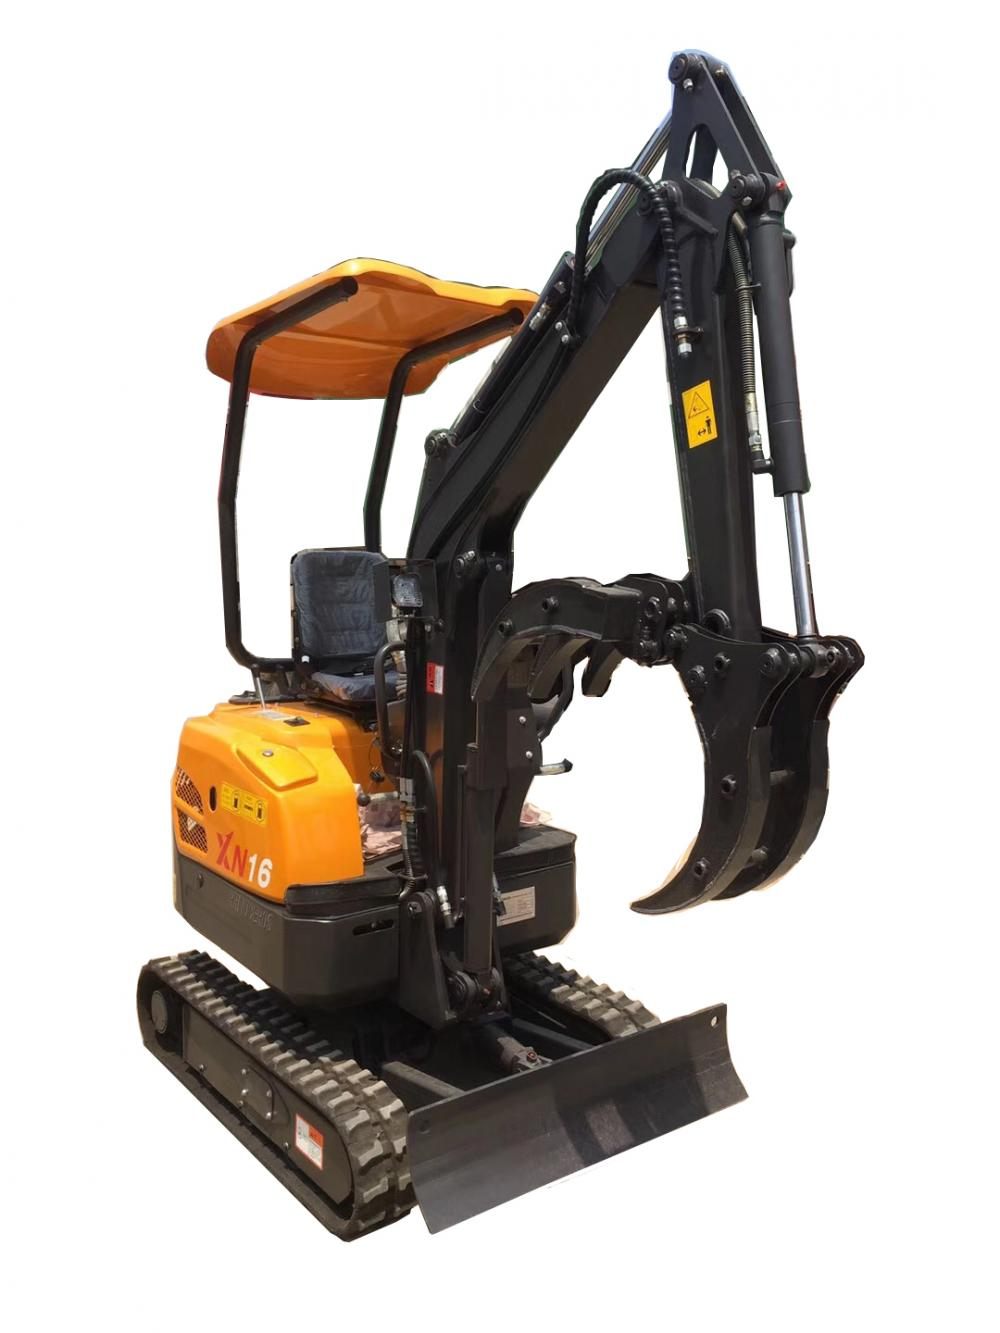 crawler excavator specifications